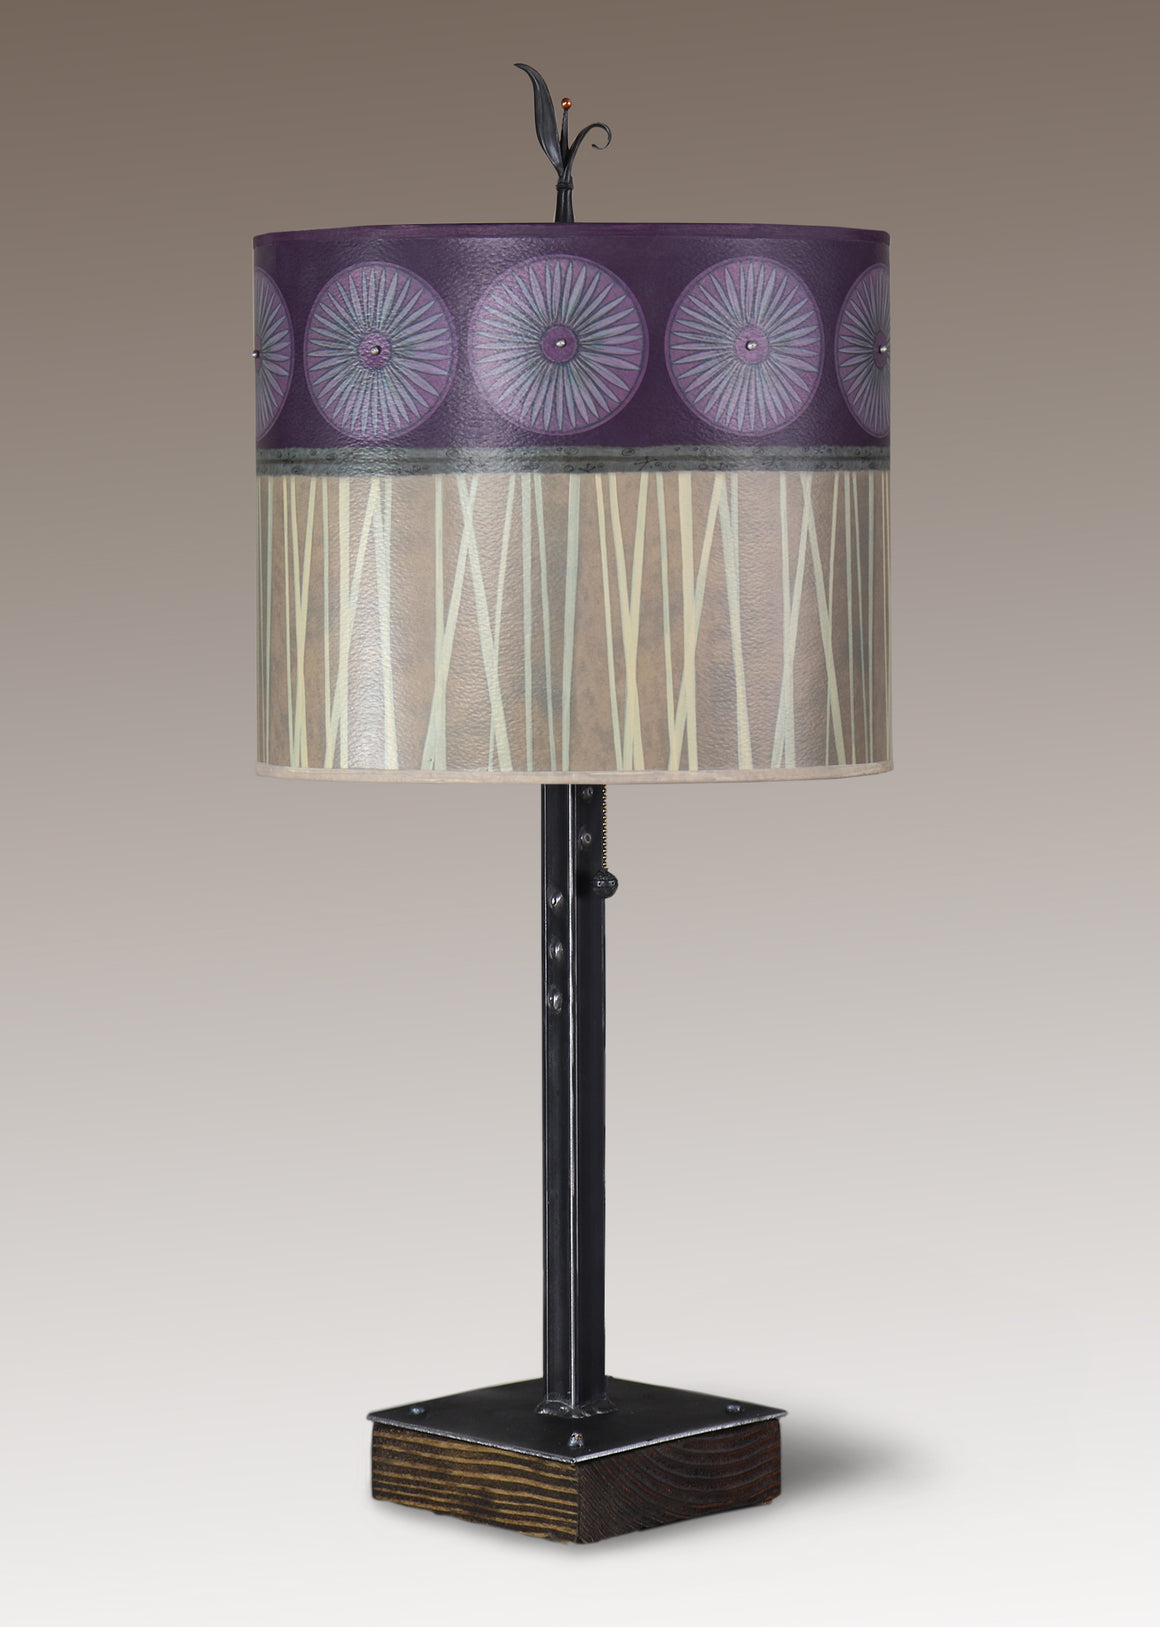 Steel Table Lamp on Wood with Large Oval Shade in Amethyst